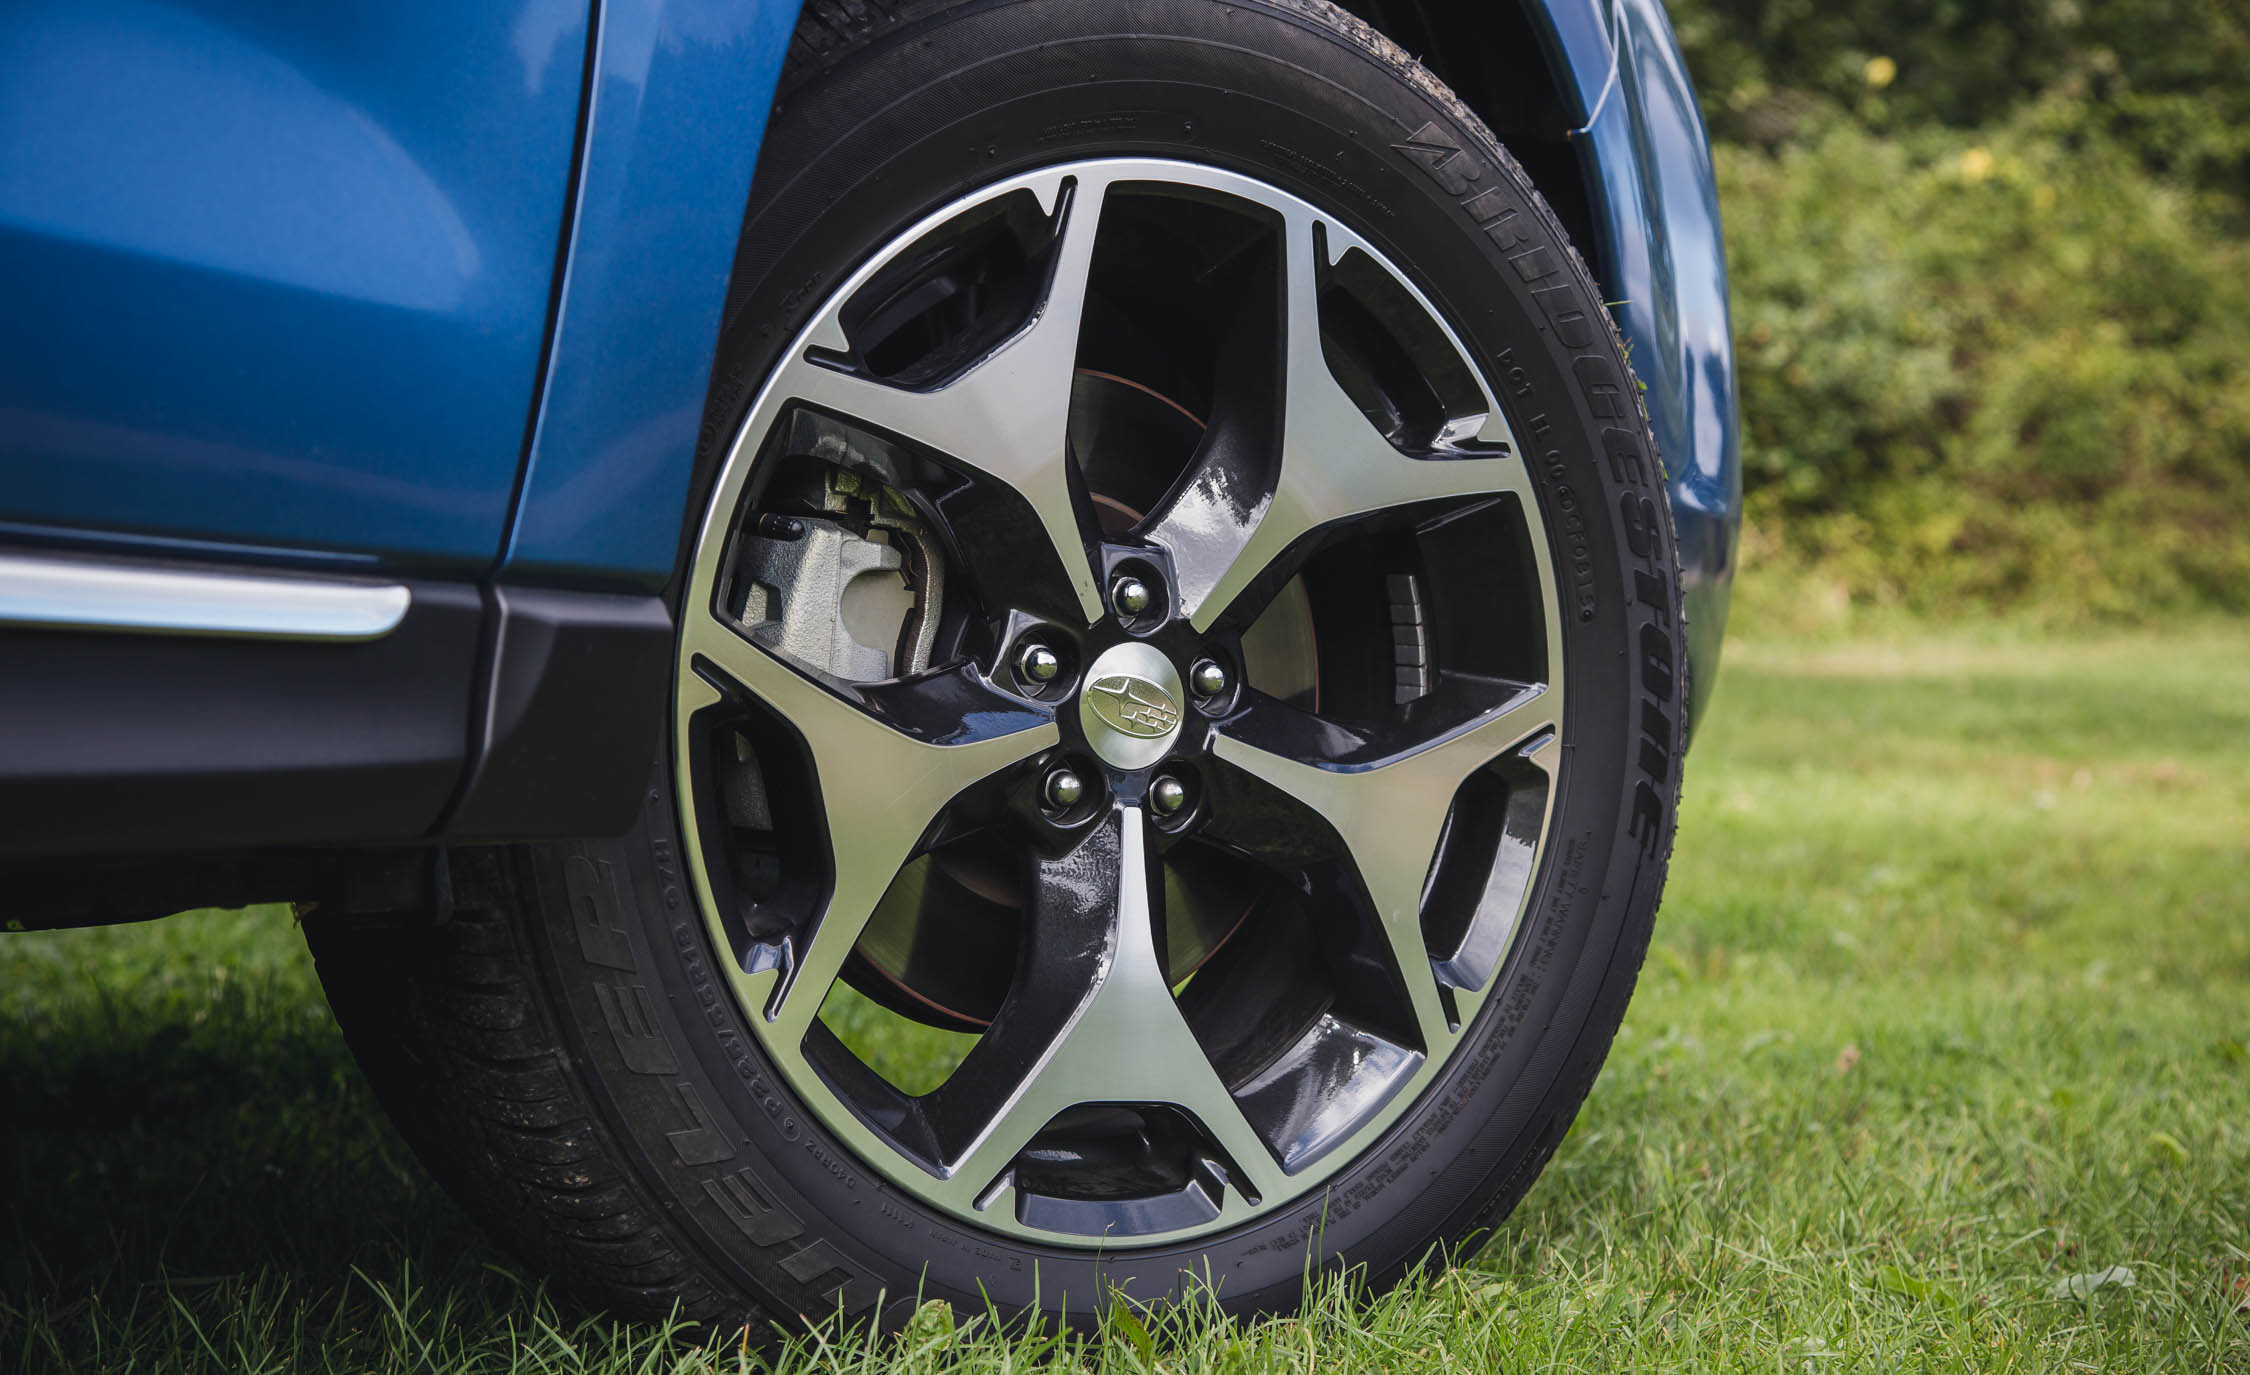 2016 Subaru Forester 2 0xt Touring Exterior Wheel (Photo 12 of 29)